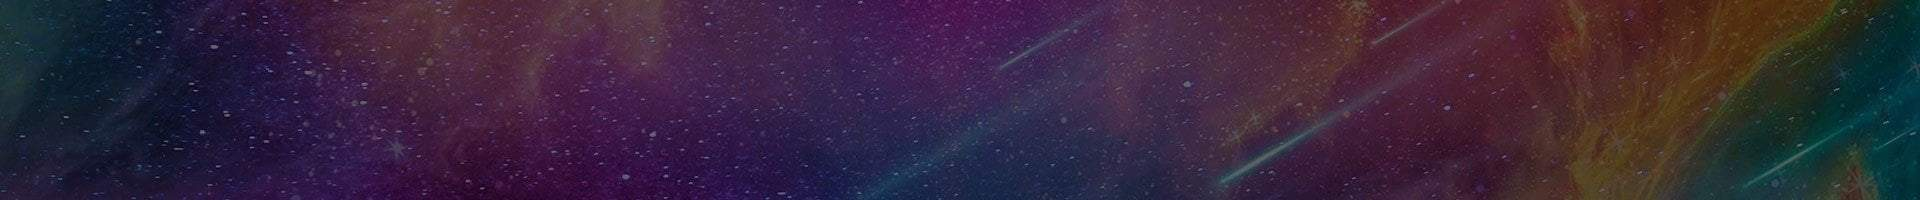 Galaxy collection banner for spring styles